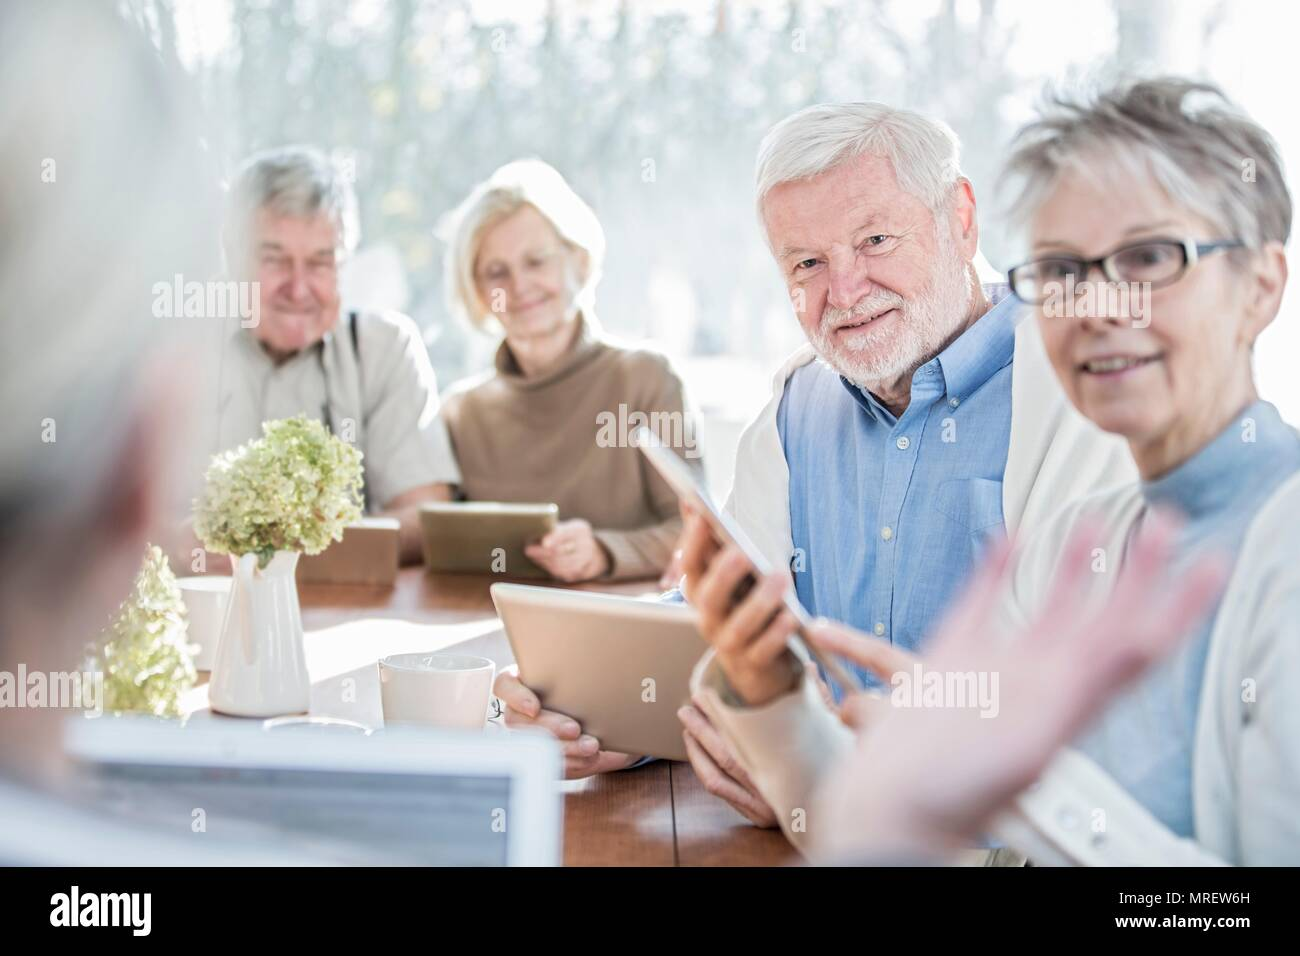 Senior adults in care home with digital tablets. - Stock Image